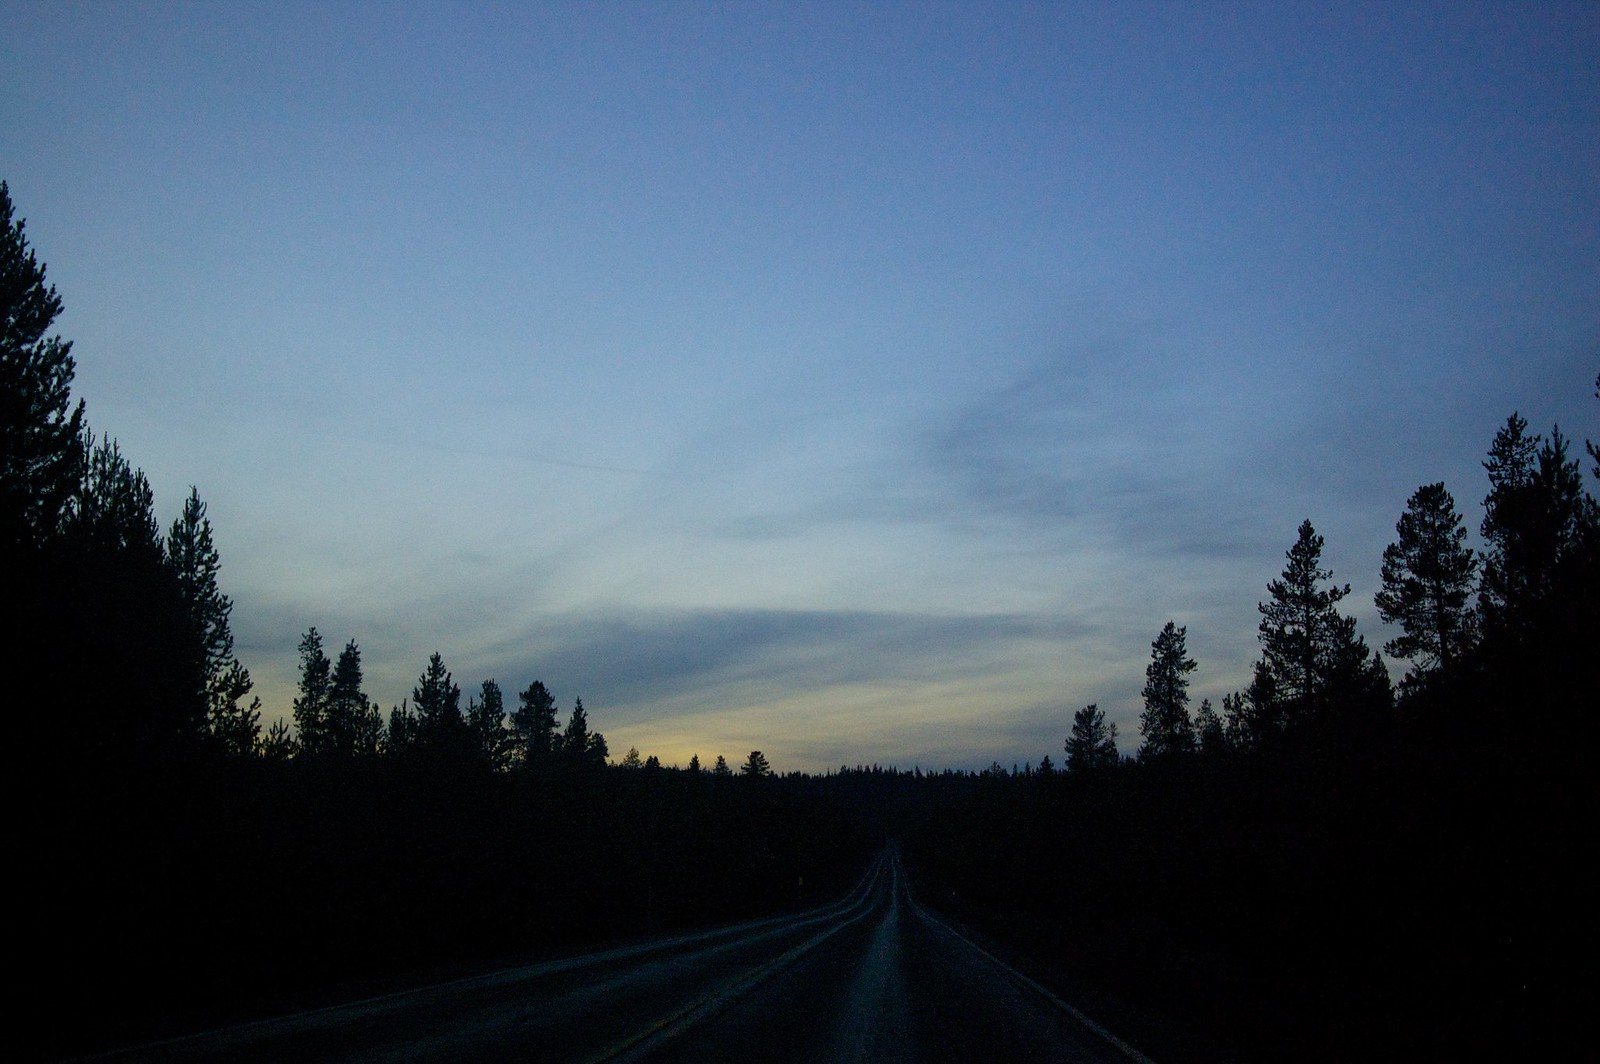 The sun is setting on our road trip